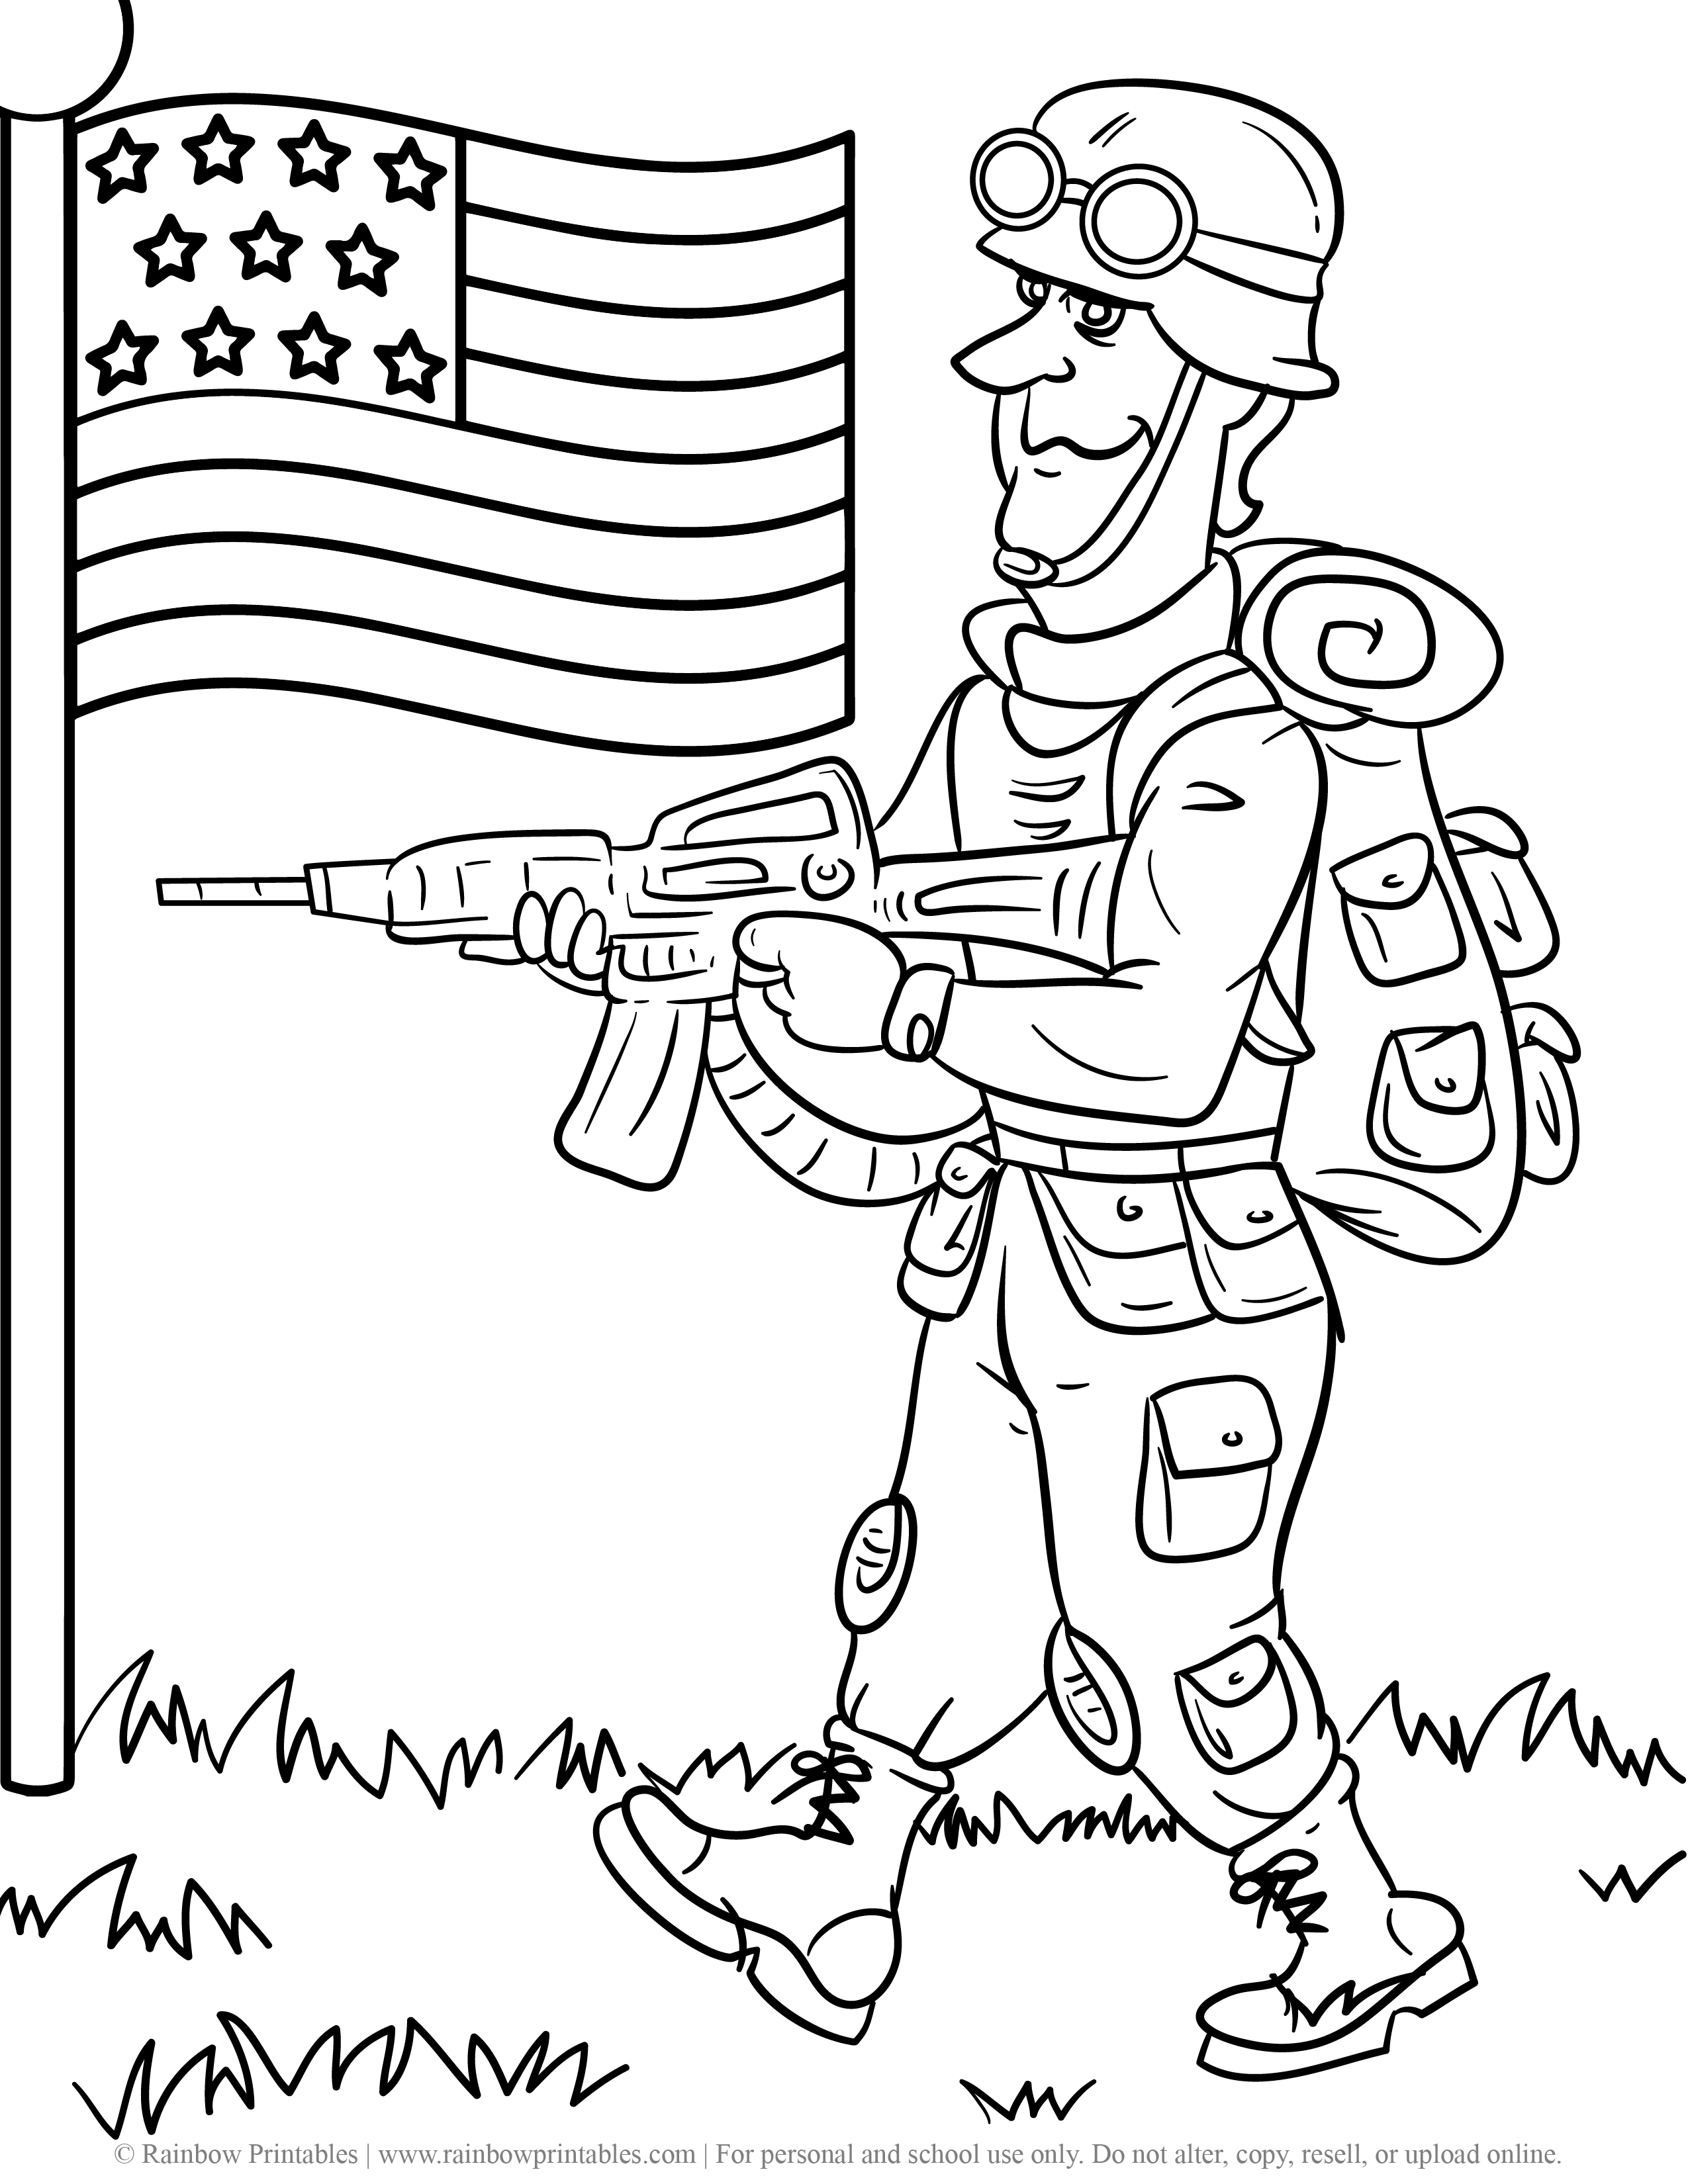 US American Soldier Army Gun Duty Navy Coloring Pages For Kids Patriotic July 4th Independence Day Simple Easy Printables